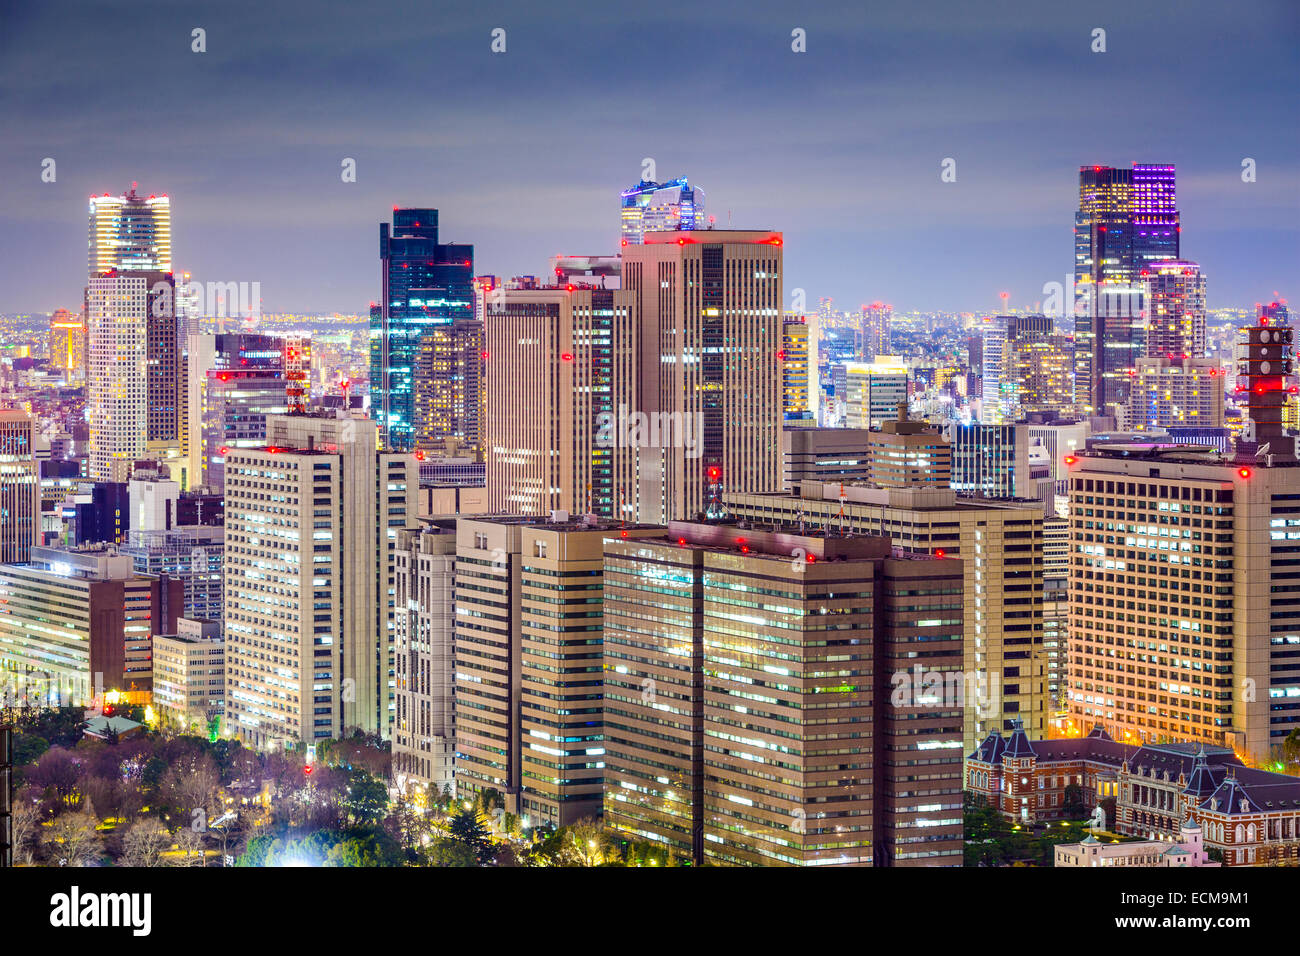 Office bulidings cityscape in Chiyoda District, Tokyo, Japan. - Stock Image